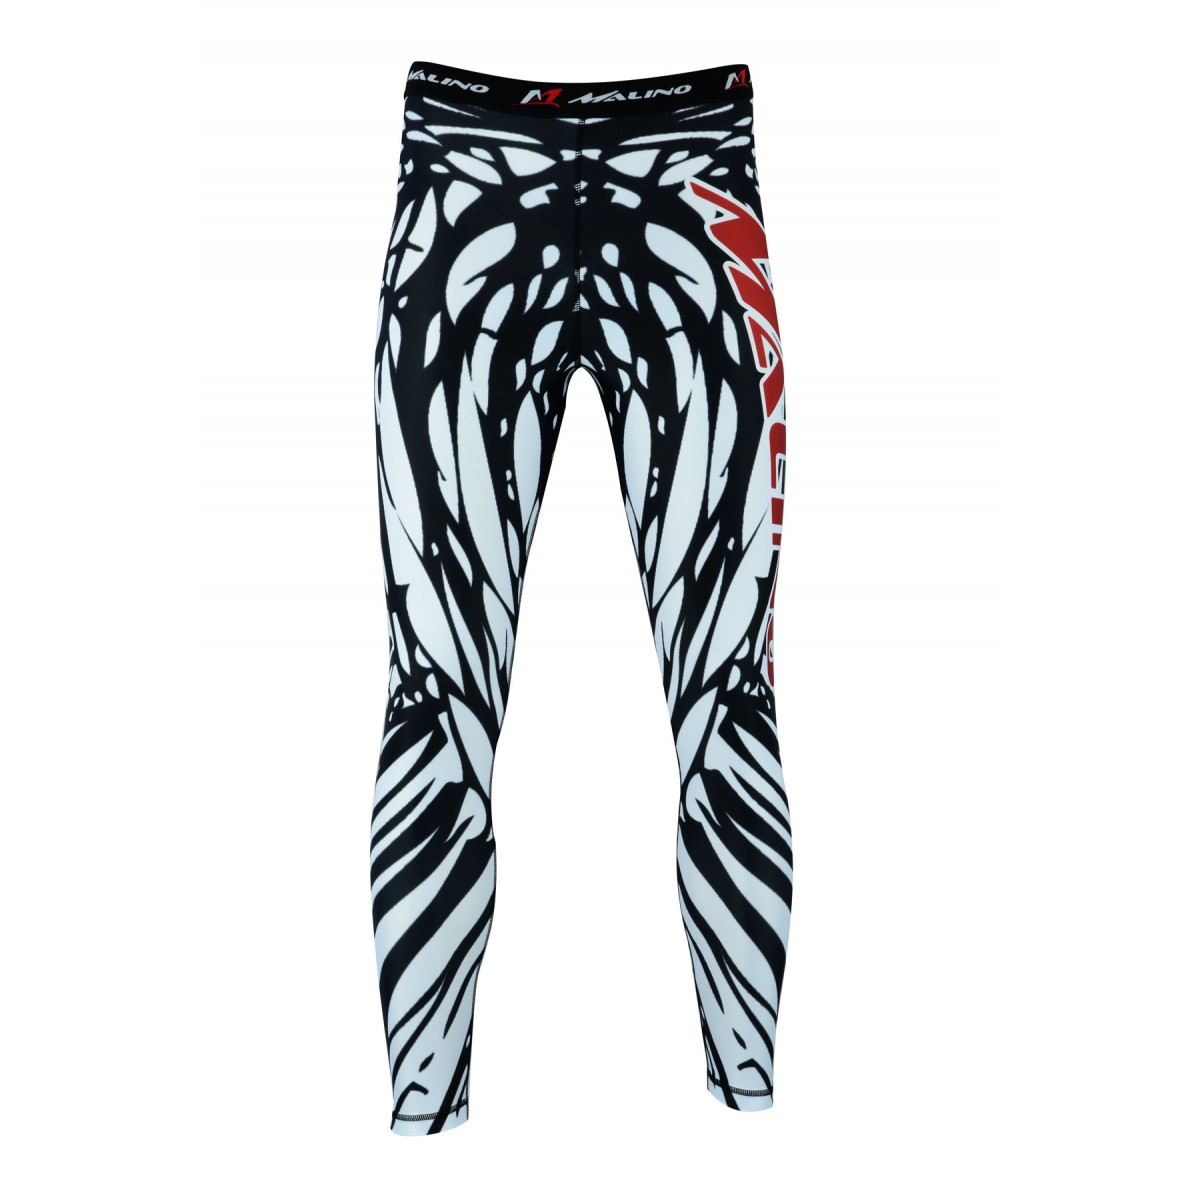 Rash Guard Pants, Sports Tights, Leggings White-Black